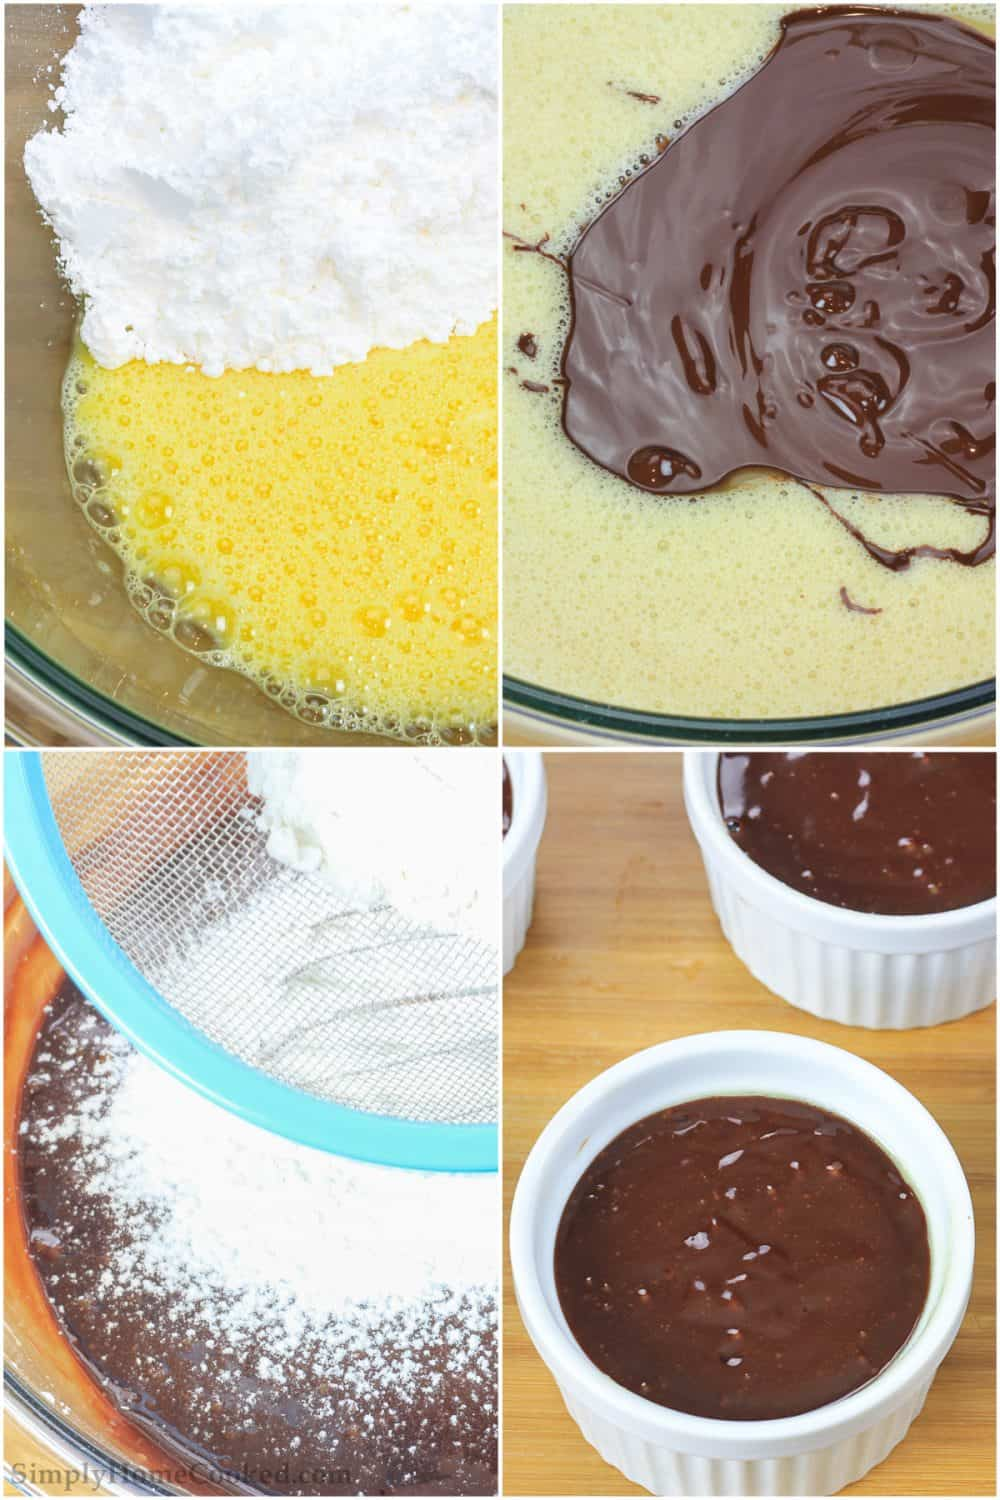 steps to make chocolate lava cake